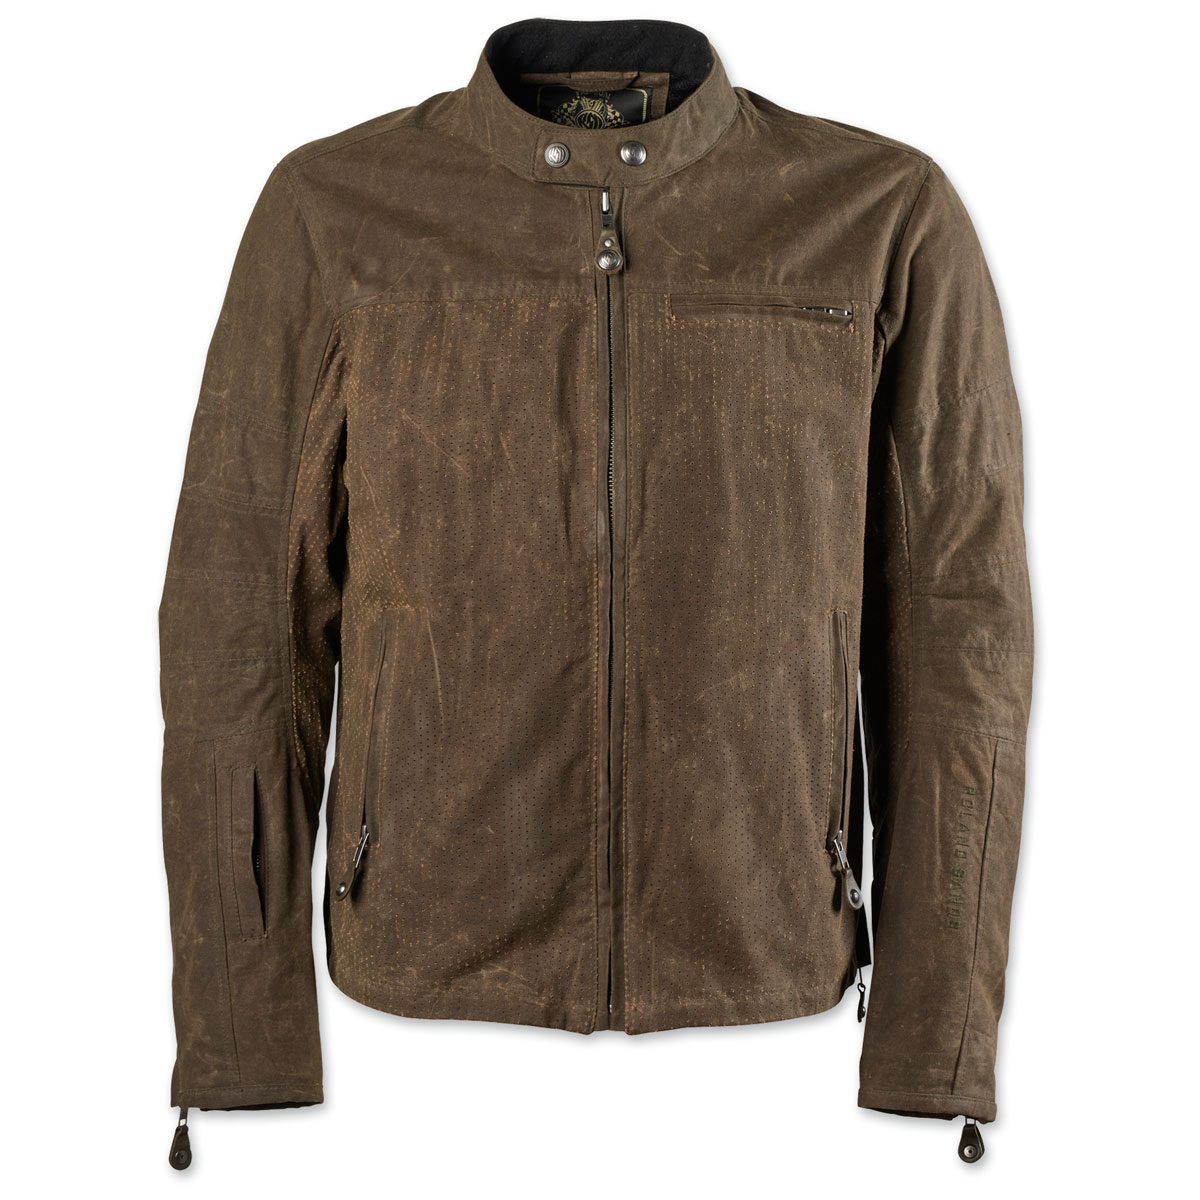 Roland Sands Design Apparel Men's Ronin Perf Waxed Cotton Ranger Jacket